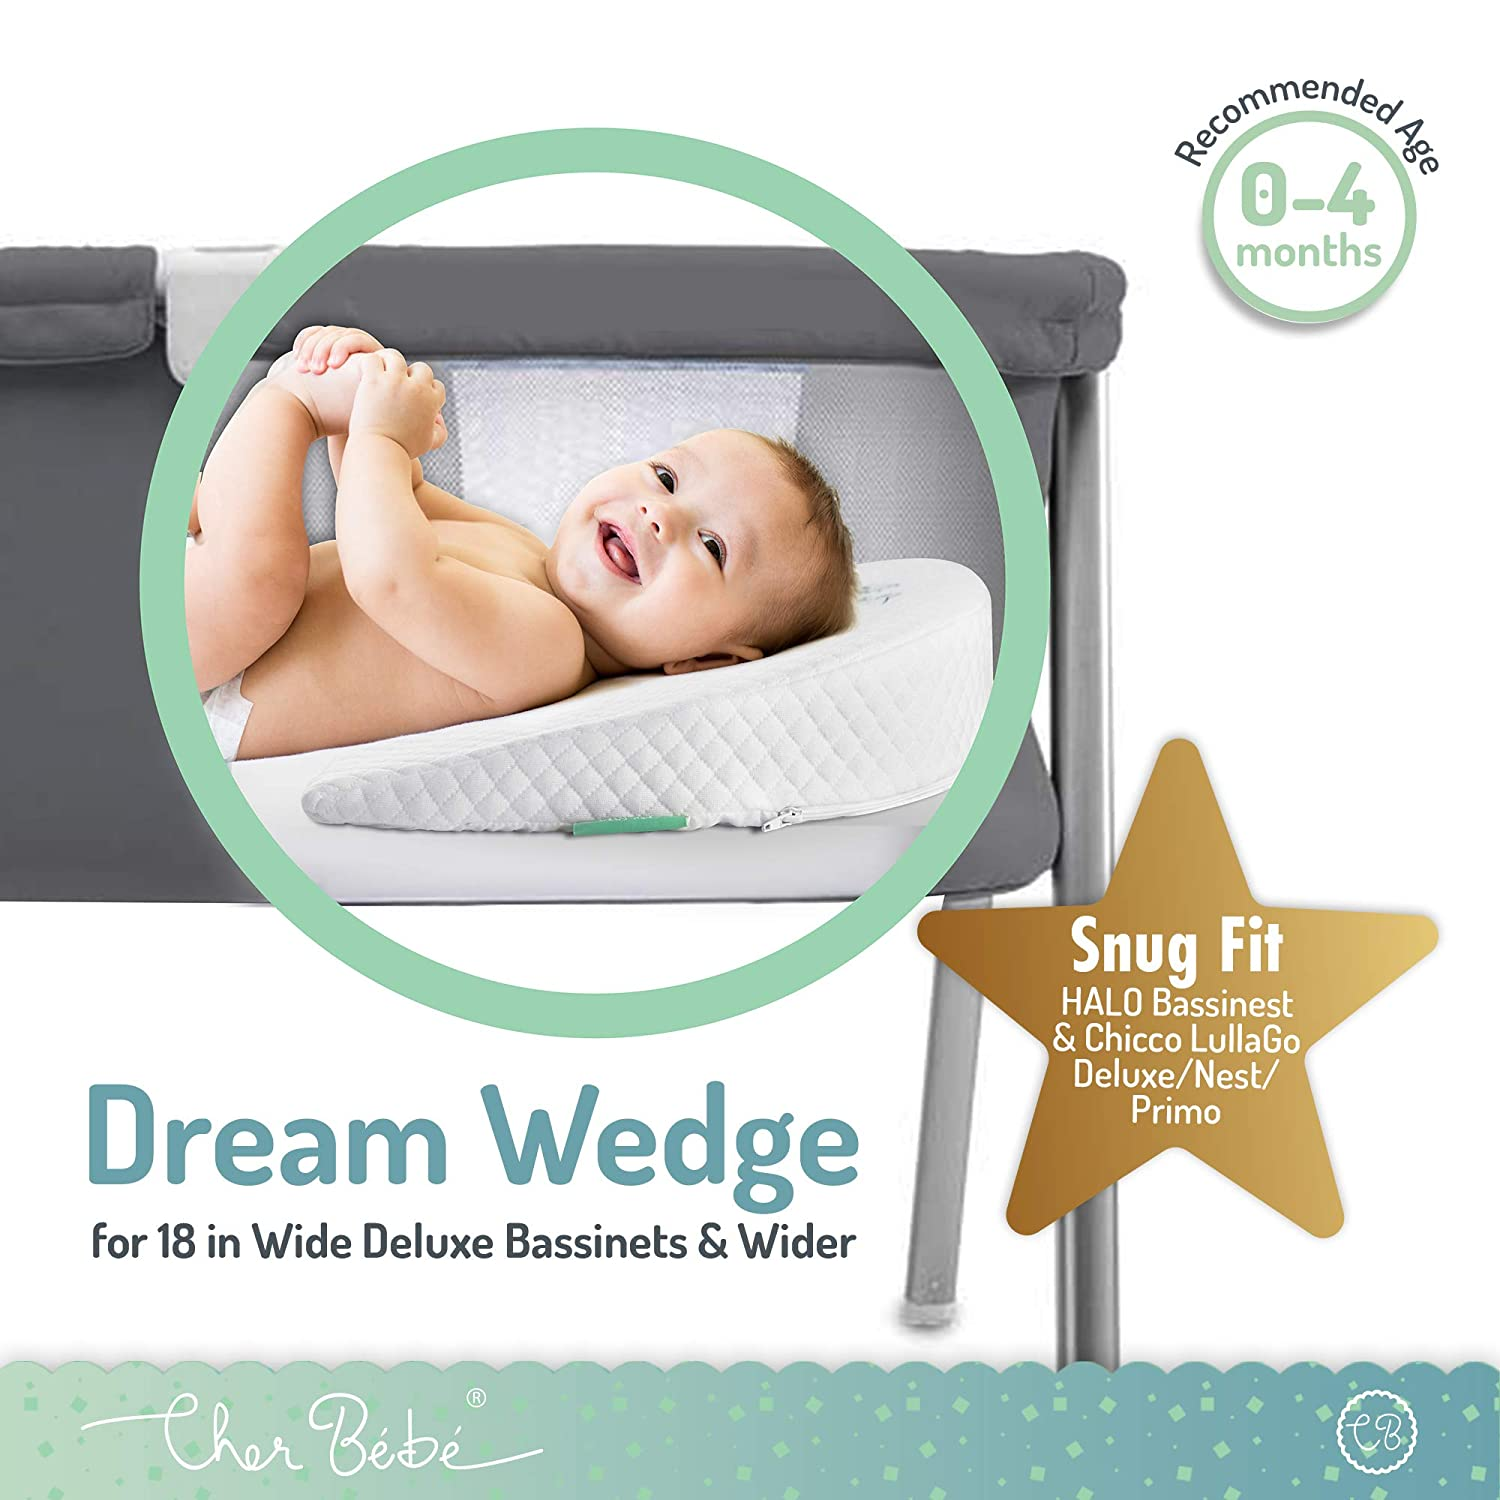 Cher B/éb/é Wedge Pillow for Halo and Chicco LullaGo Bassinets Cotton and Waterproof Covers High Incline for Reflux and Colic Sleep Positioner for Baby Mattress Pads